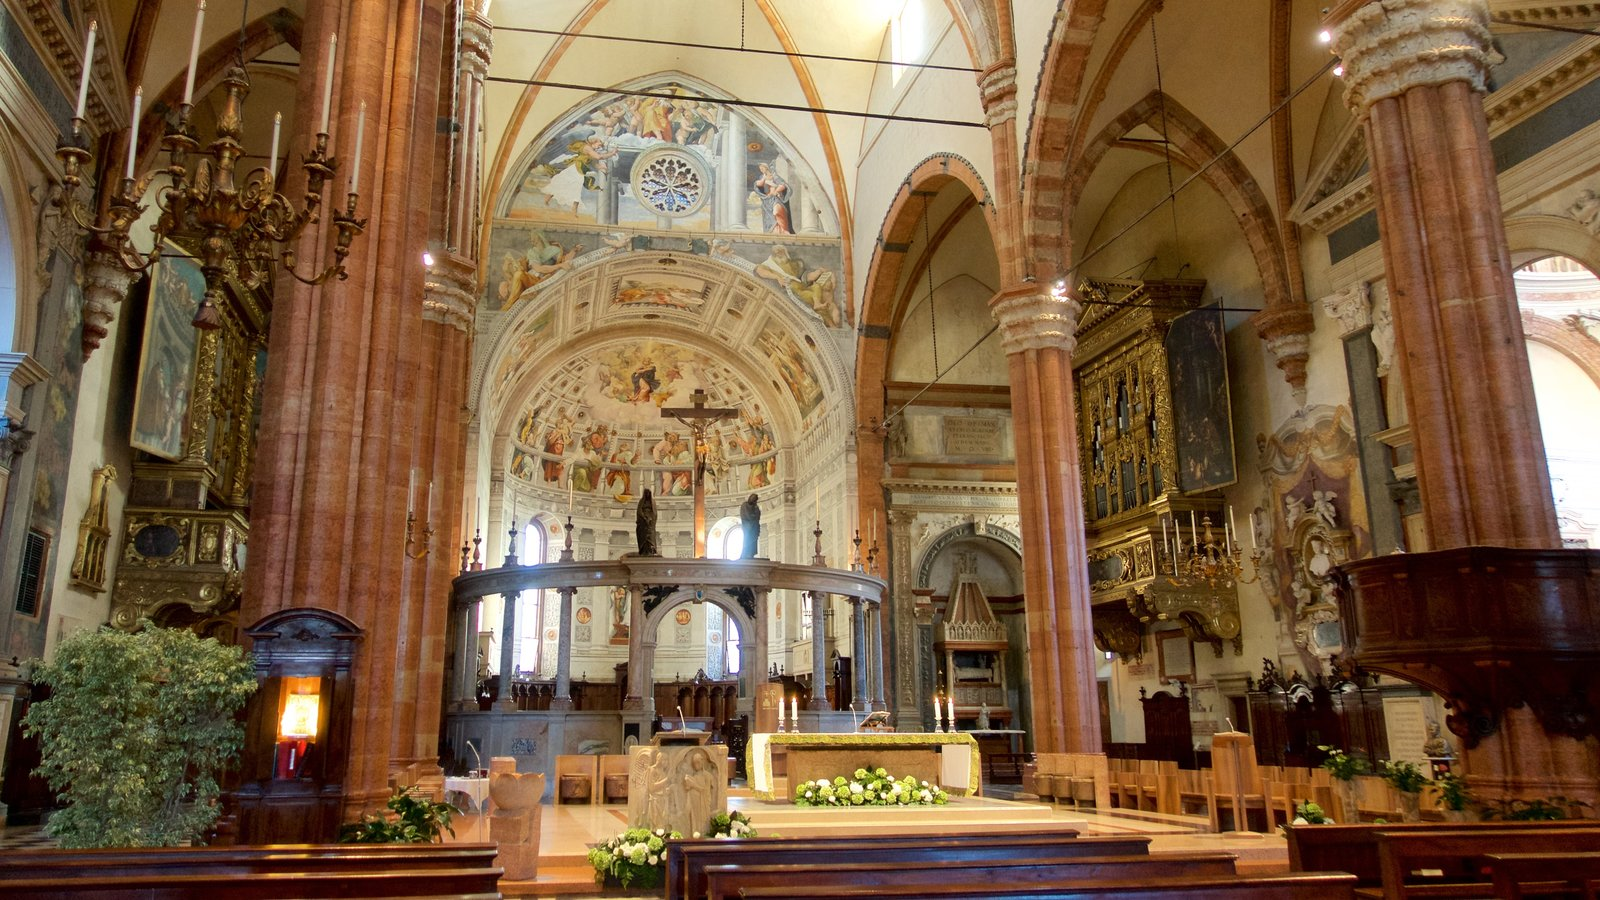 Verona featuring heritage architecture, a church or cathedral and interior views